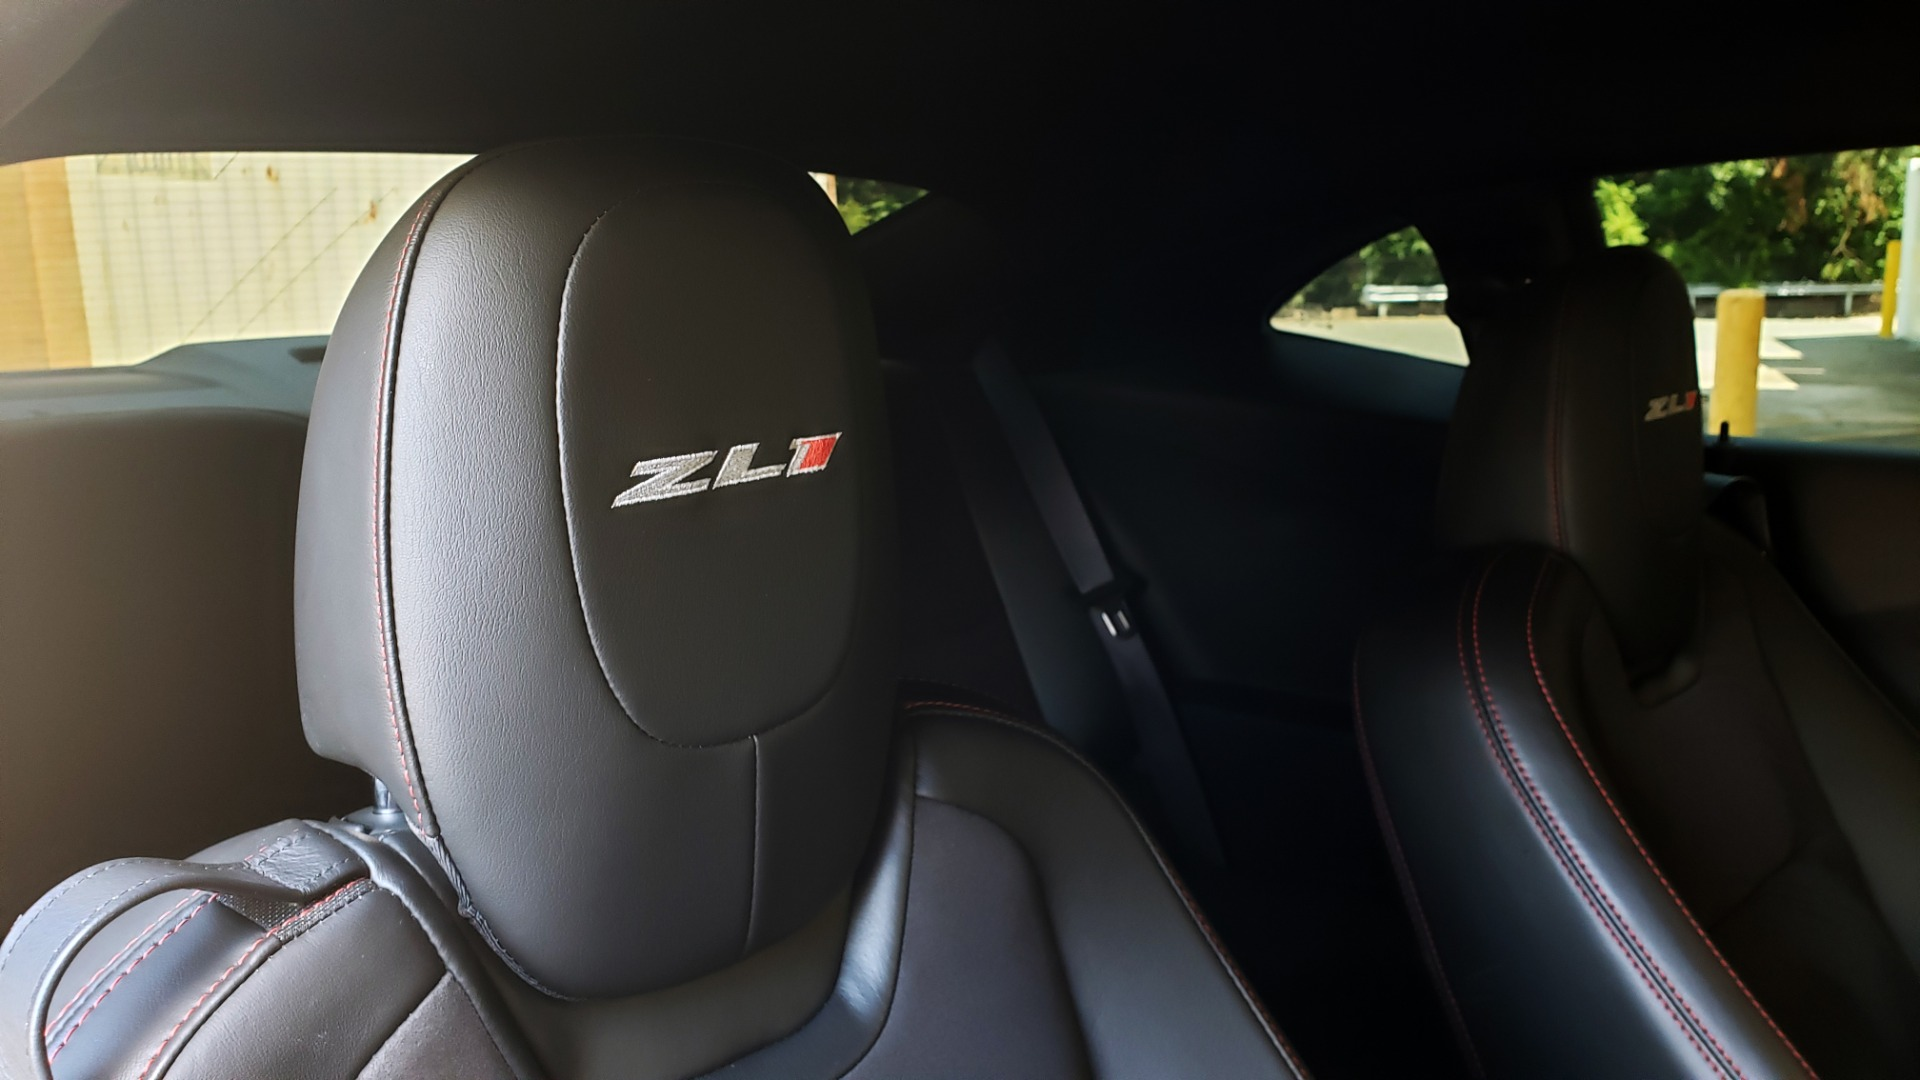 Used 2013 Chevrolet CAMARO ZL1 / 6.2L SUPERCHARGED 580HP / 6-SPD AUTO / NAV / REARVIEW for sale Sold at Formula Imports in Charlotte NC 28227 80